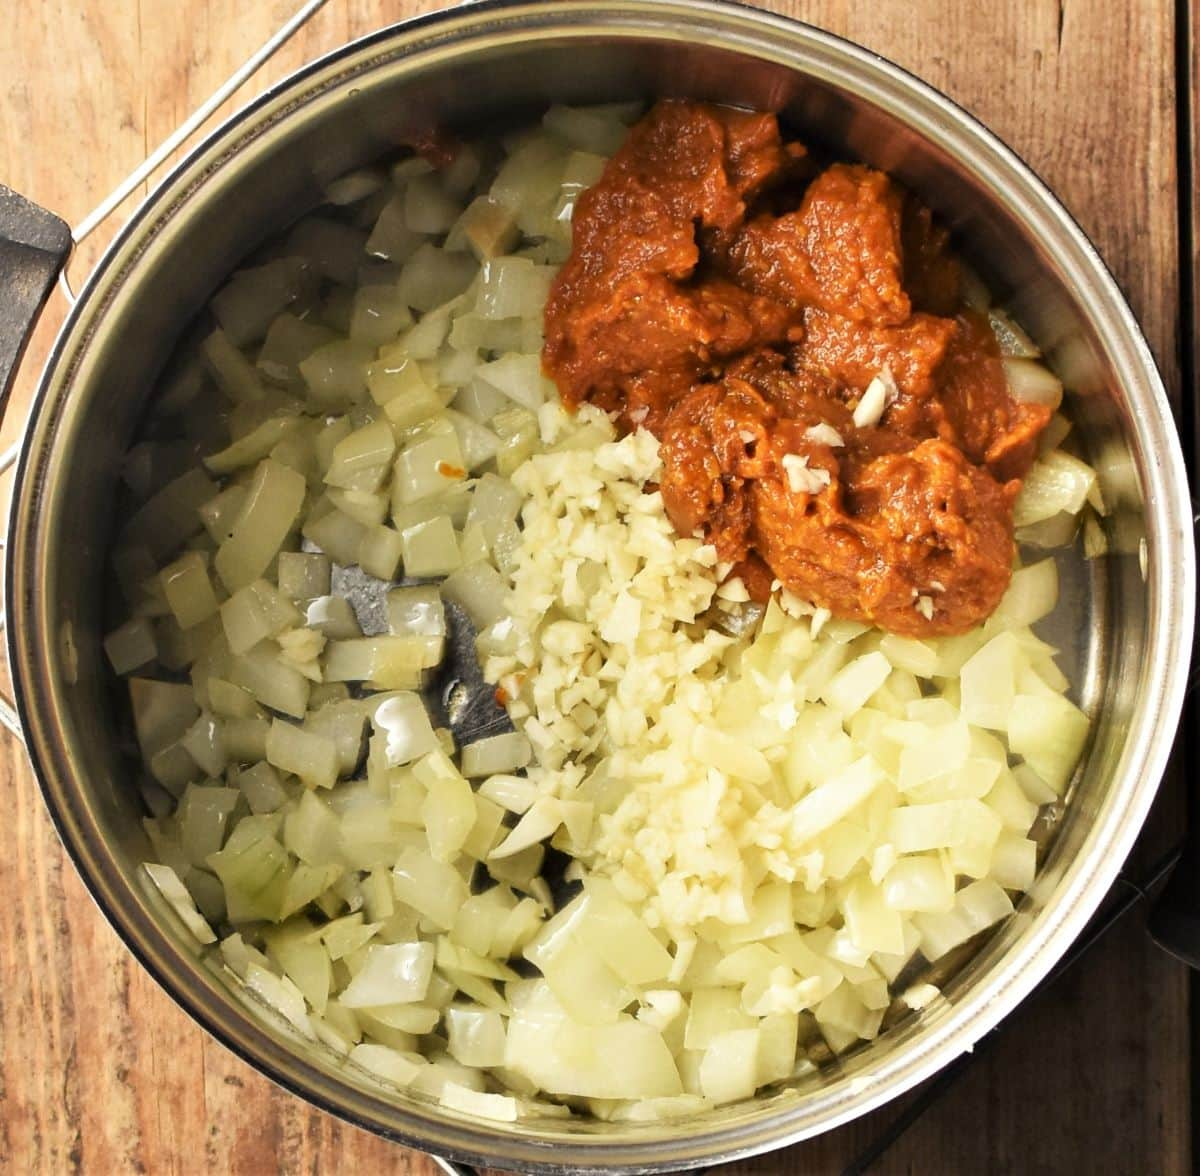 Chopped onion and curry paste in saucepan.